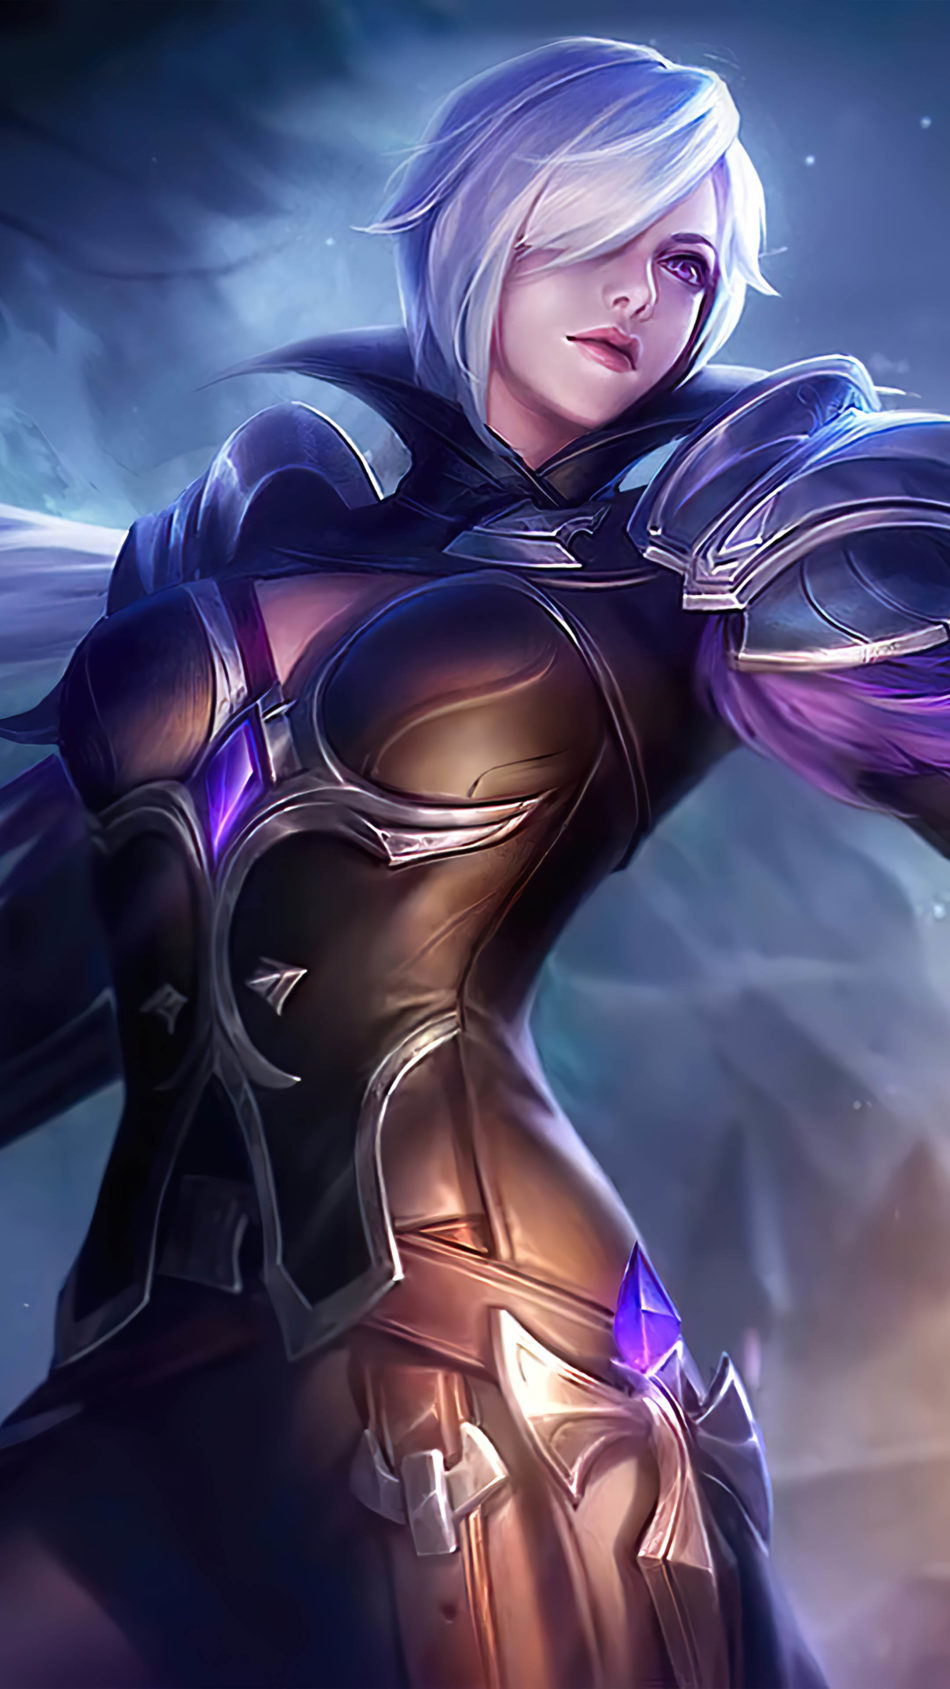 Silvanna Midnight Justice Mobile Legends 4K Ultra HD Mobile Wallpaper